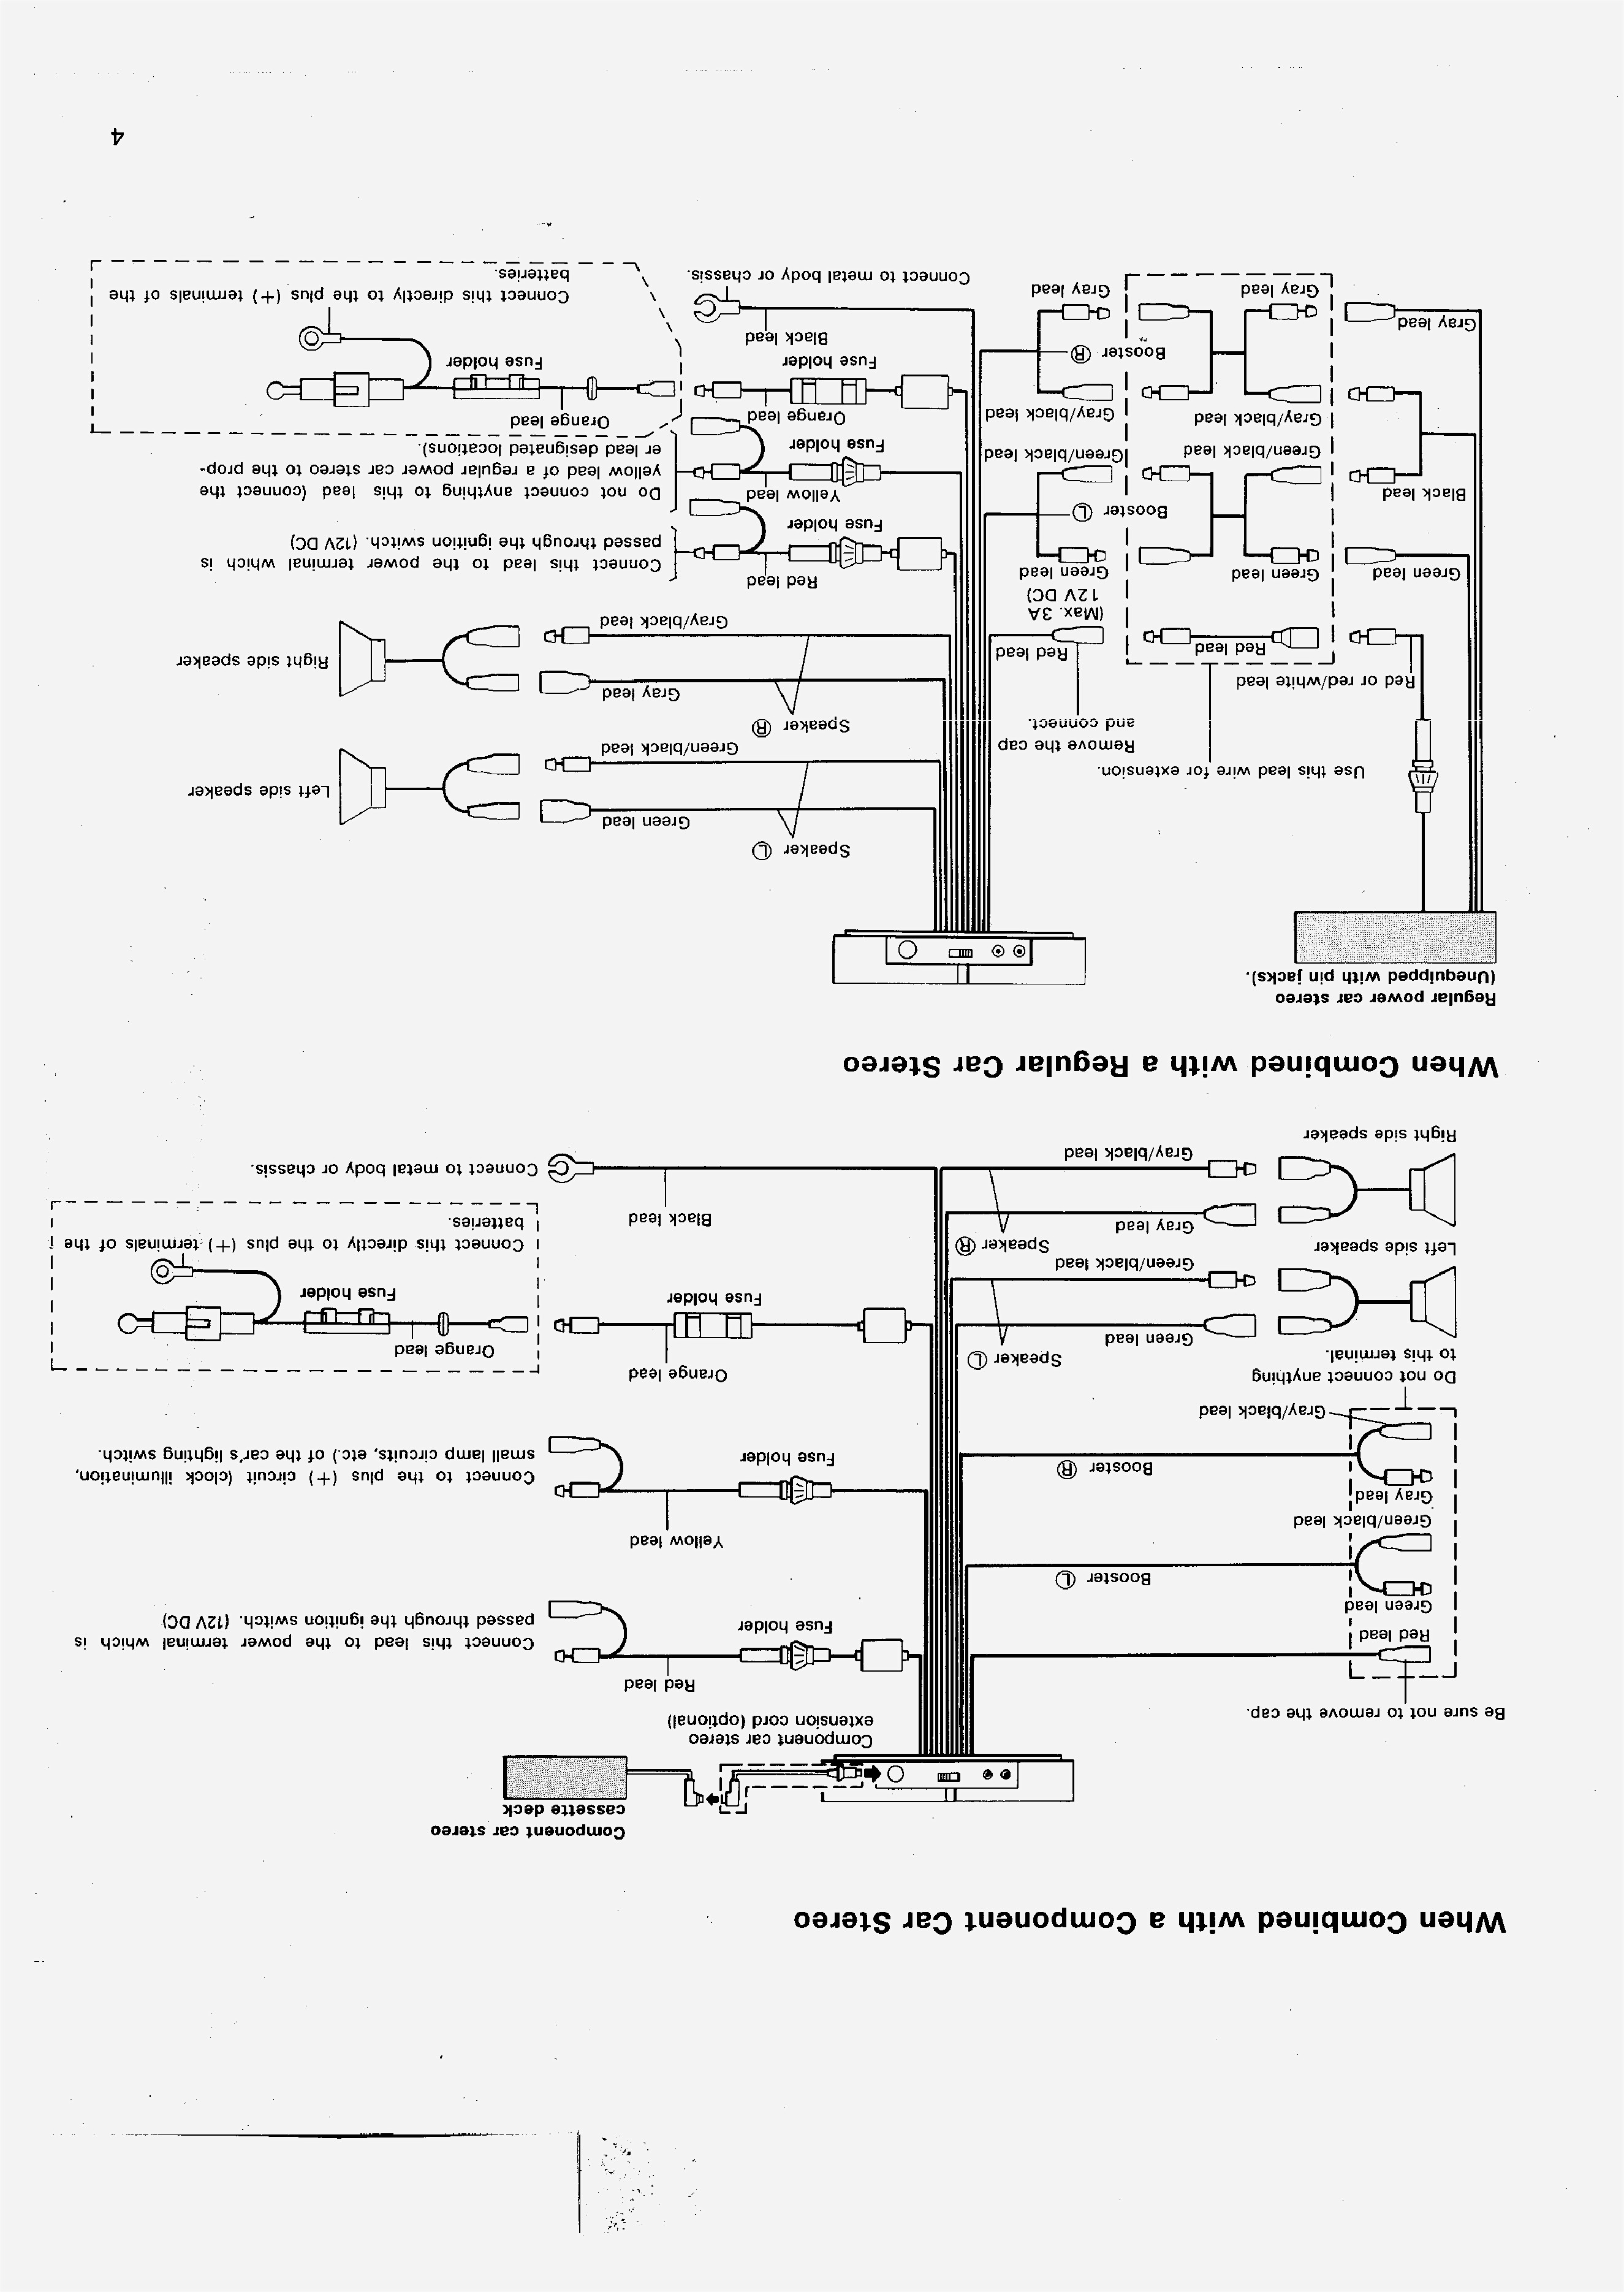 Pioneer mixtrax wiring diagram wiring diagram image diagram pioneer fh x700bt wiring and deh 1300mp stuning harness mixtrax installation physical layout auto repair asfbconference2016 Choice Image